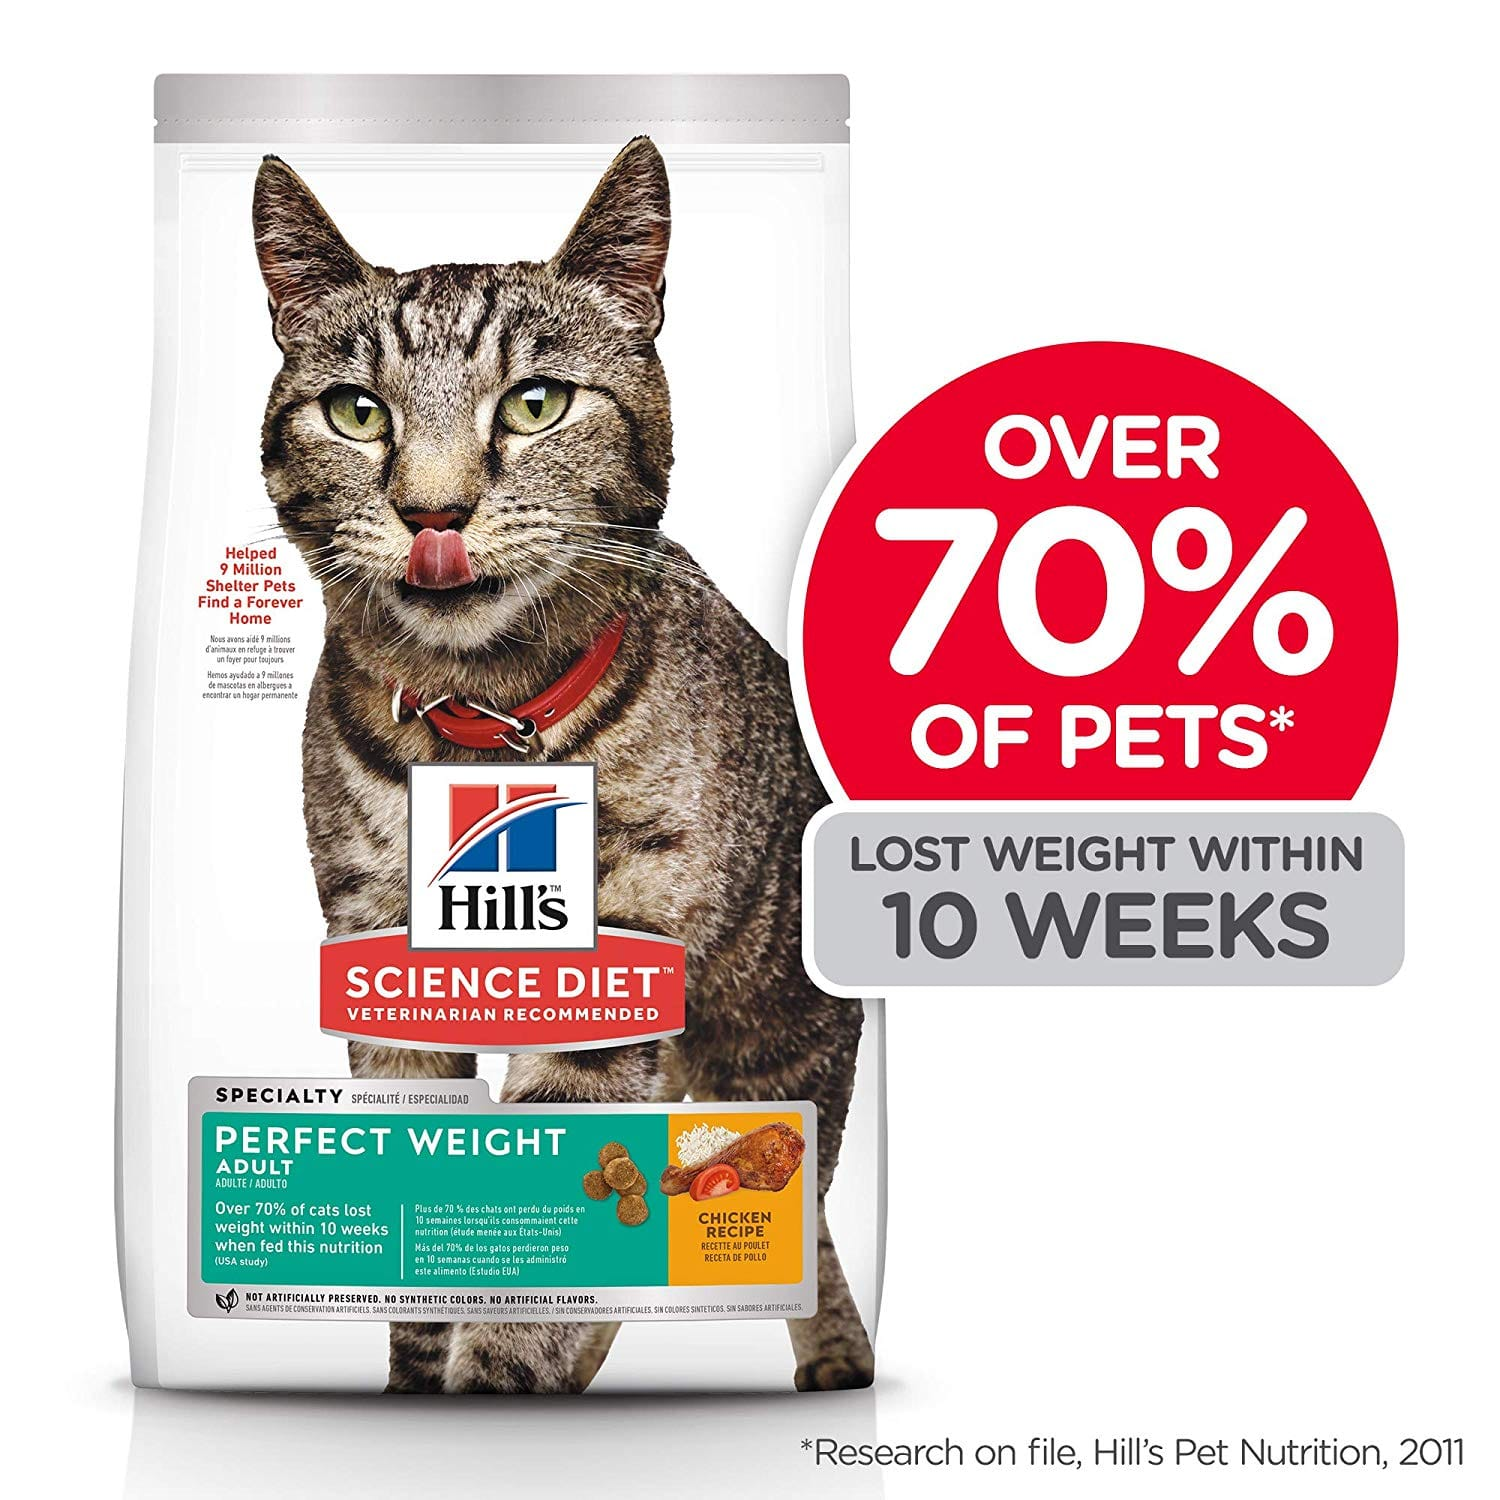 Select Amazon Prime customers |15lb Hill's Science Diet Dry Cat Food, Adult, Perfect Weight | $18.99 with first Subscribe and Save order